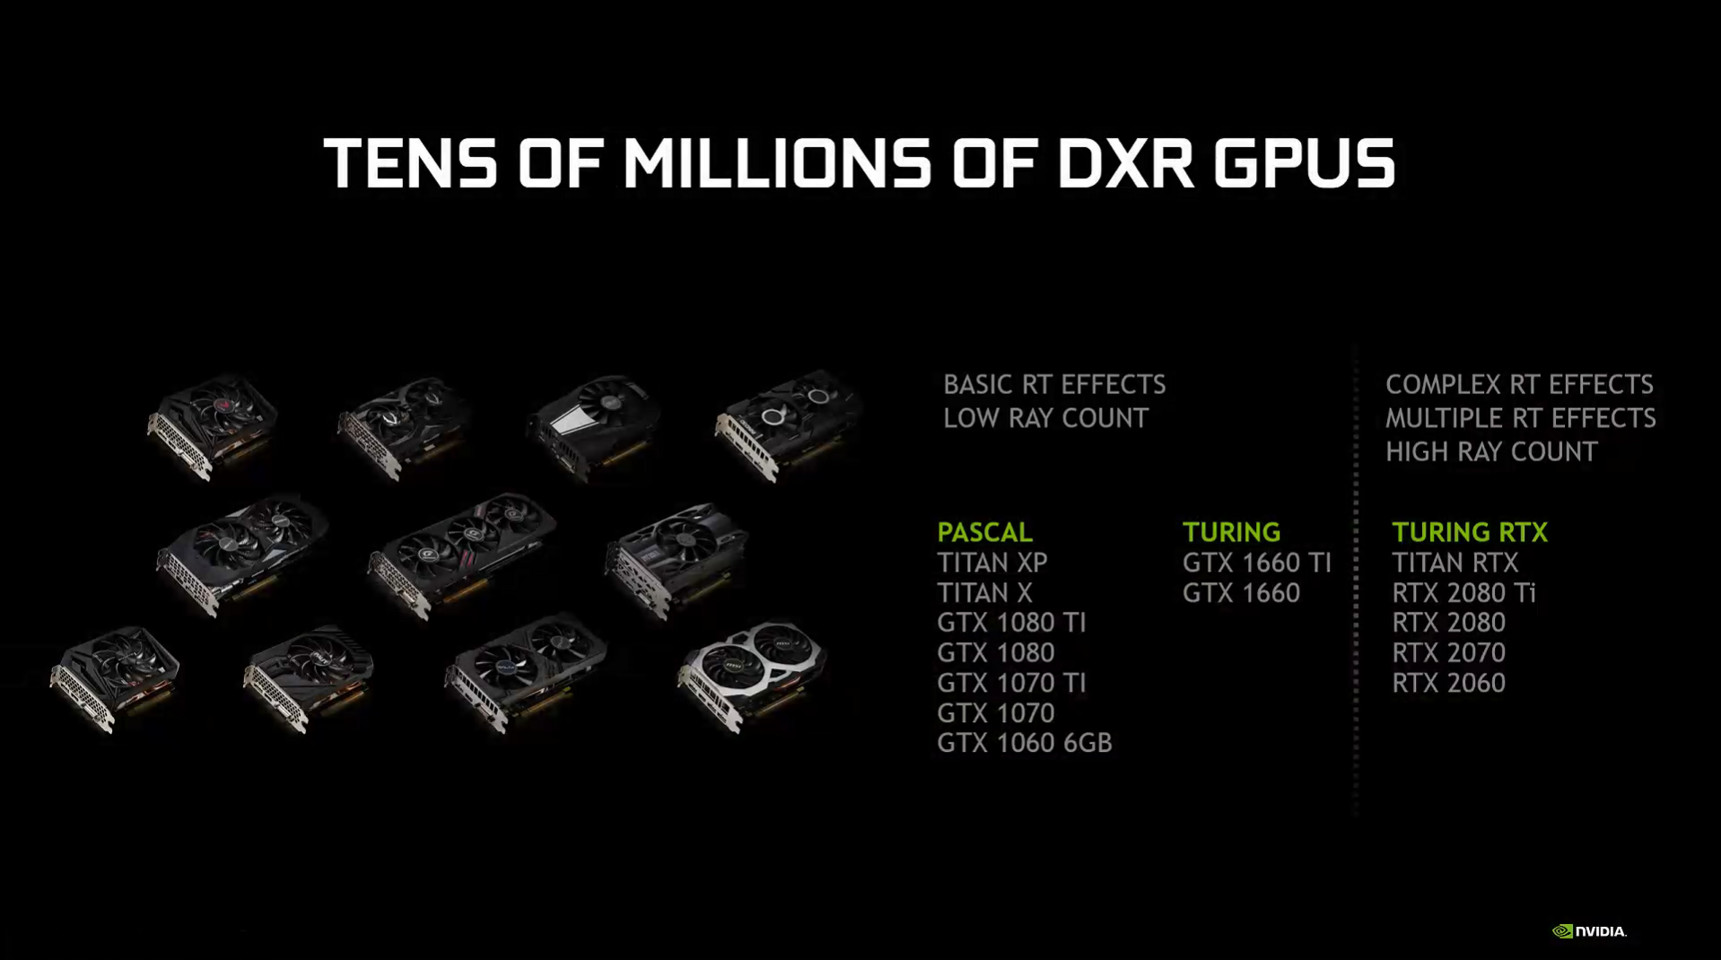 NVIDIA to Enable DXR Ray Tracing on GTX (10- and 16-series